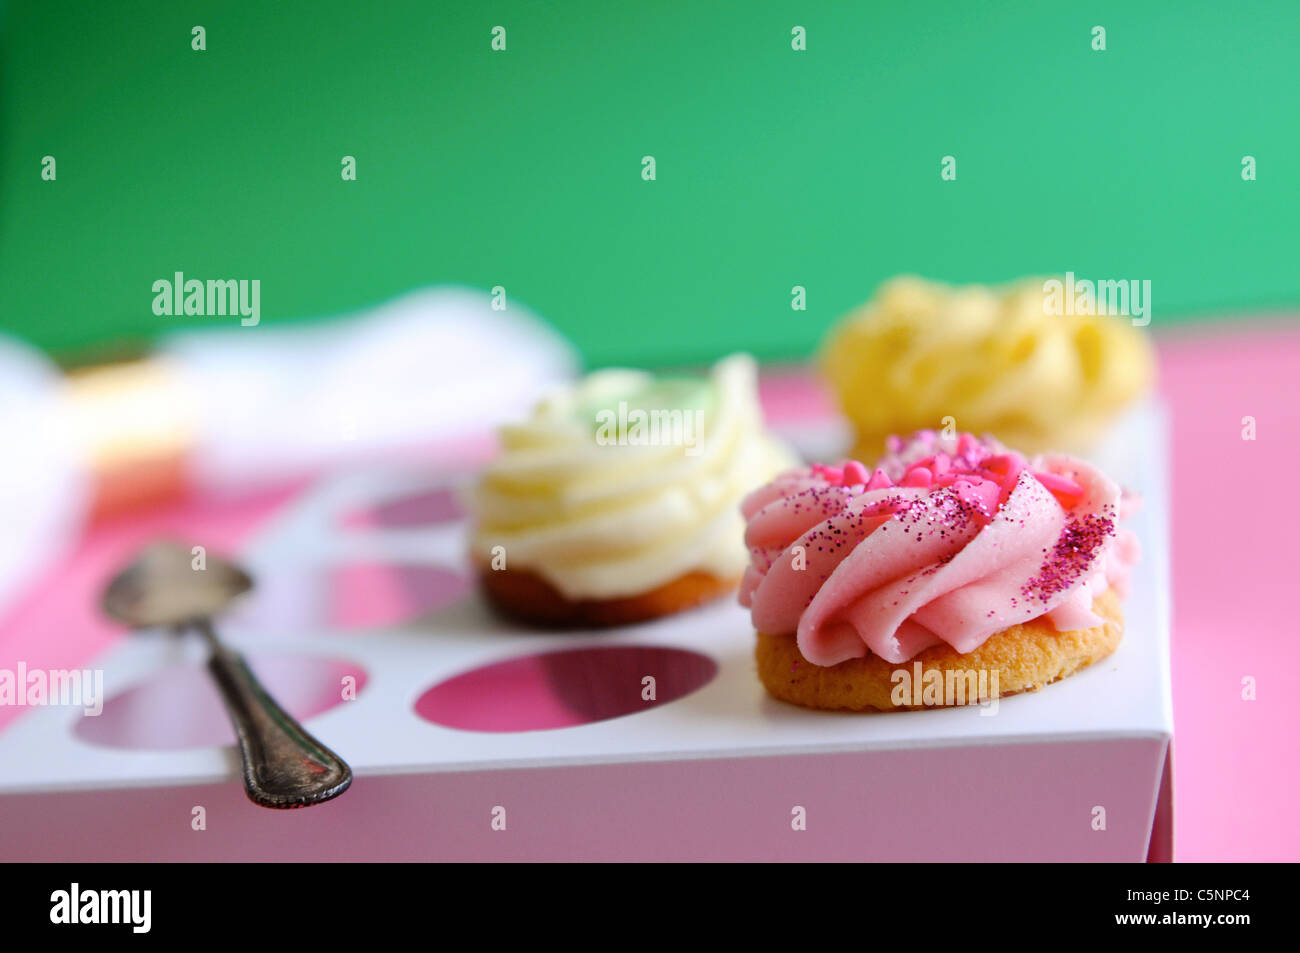 Assorted cupcakes Photo Stock